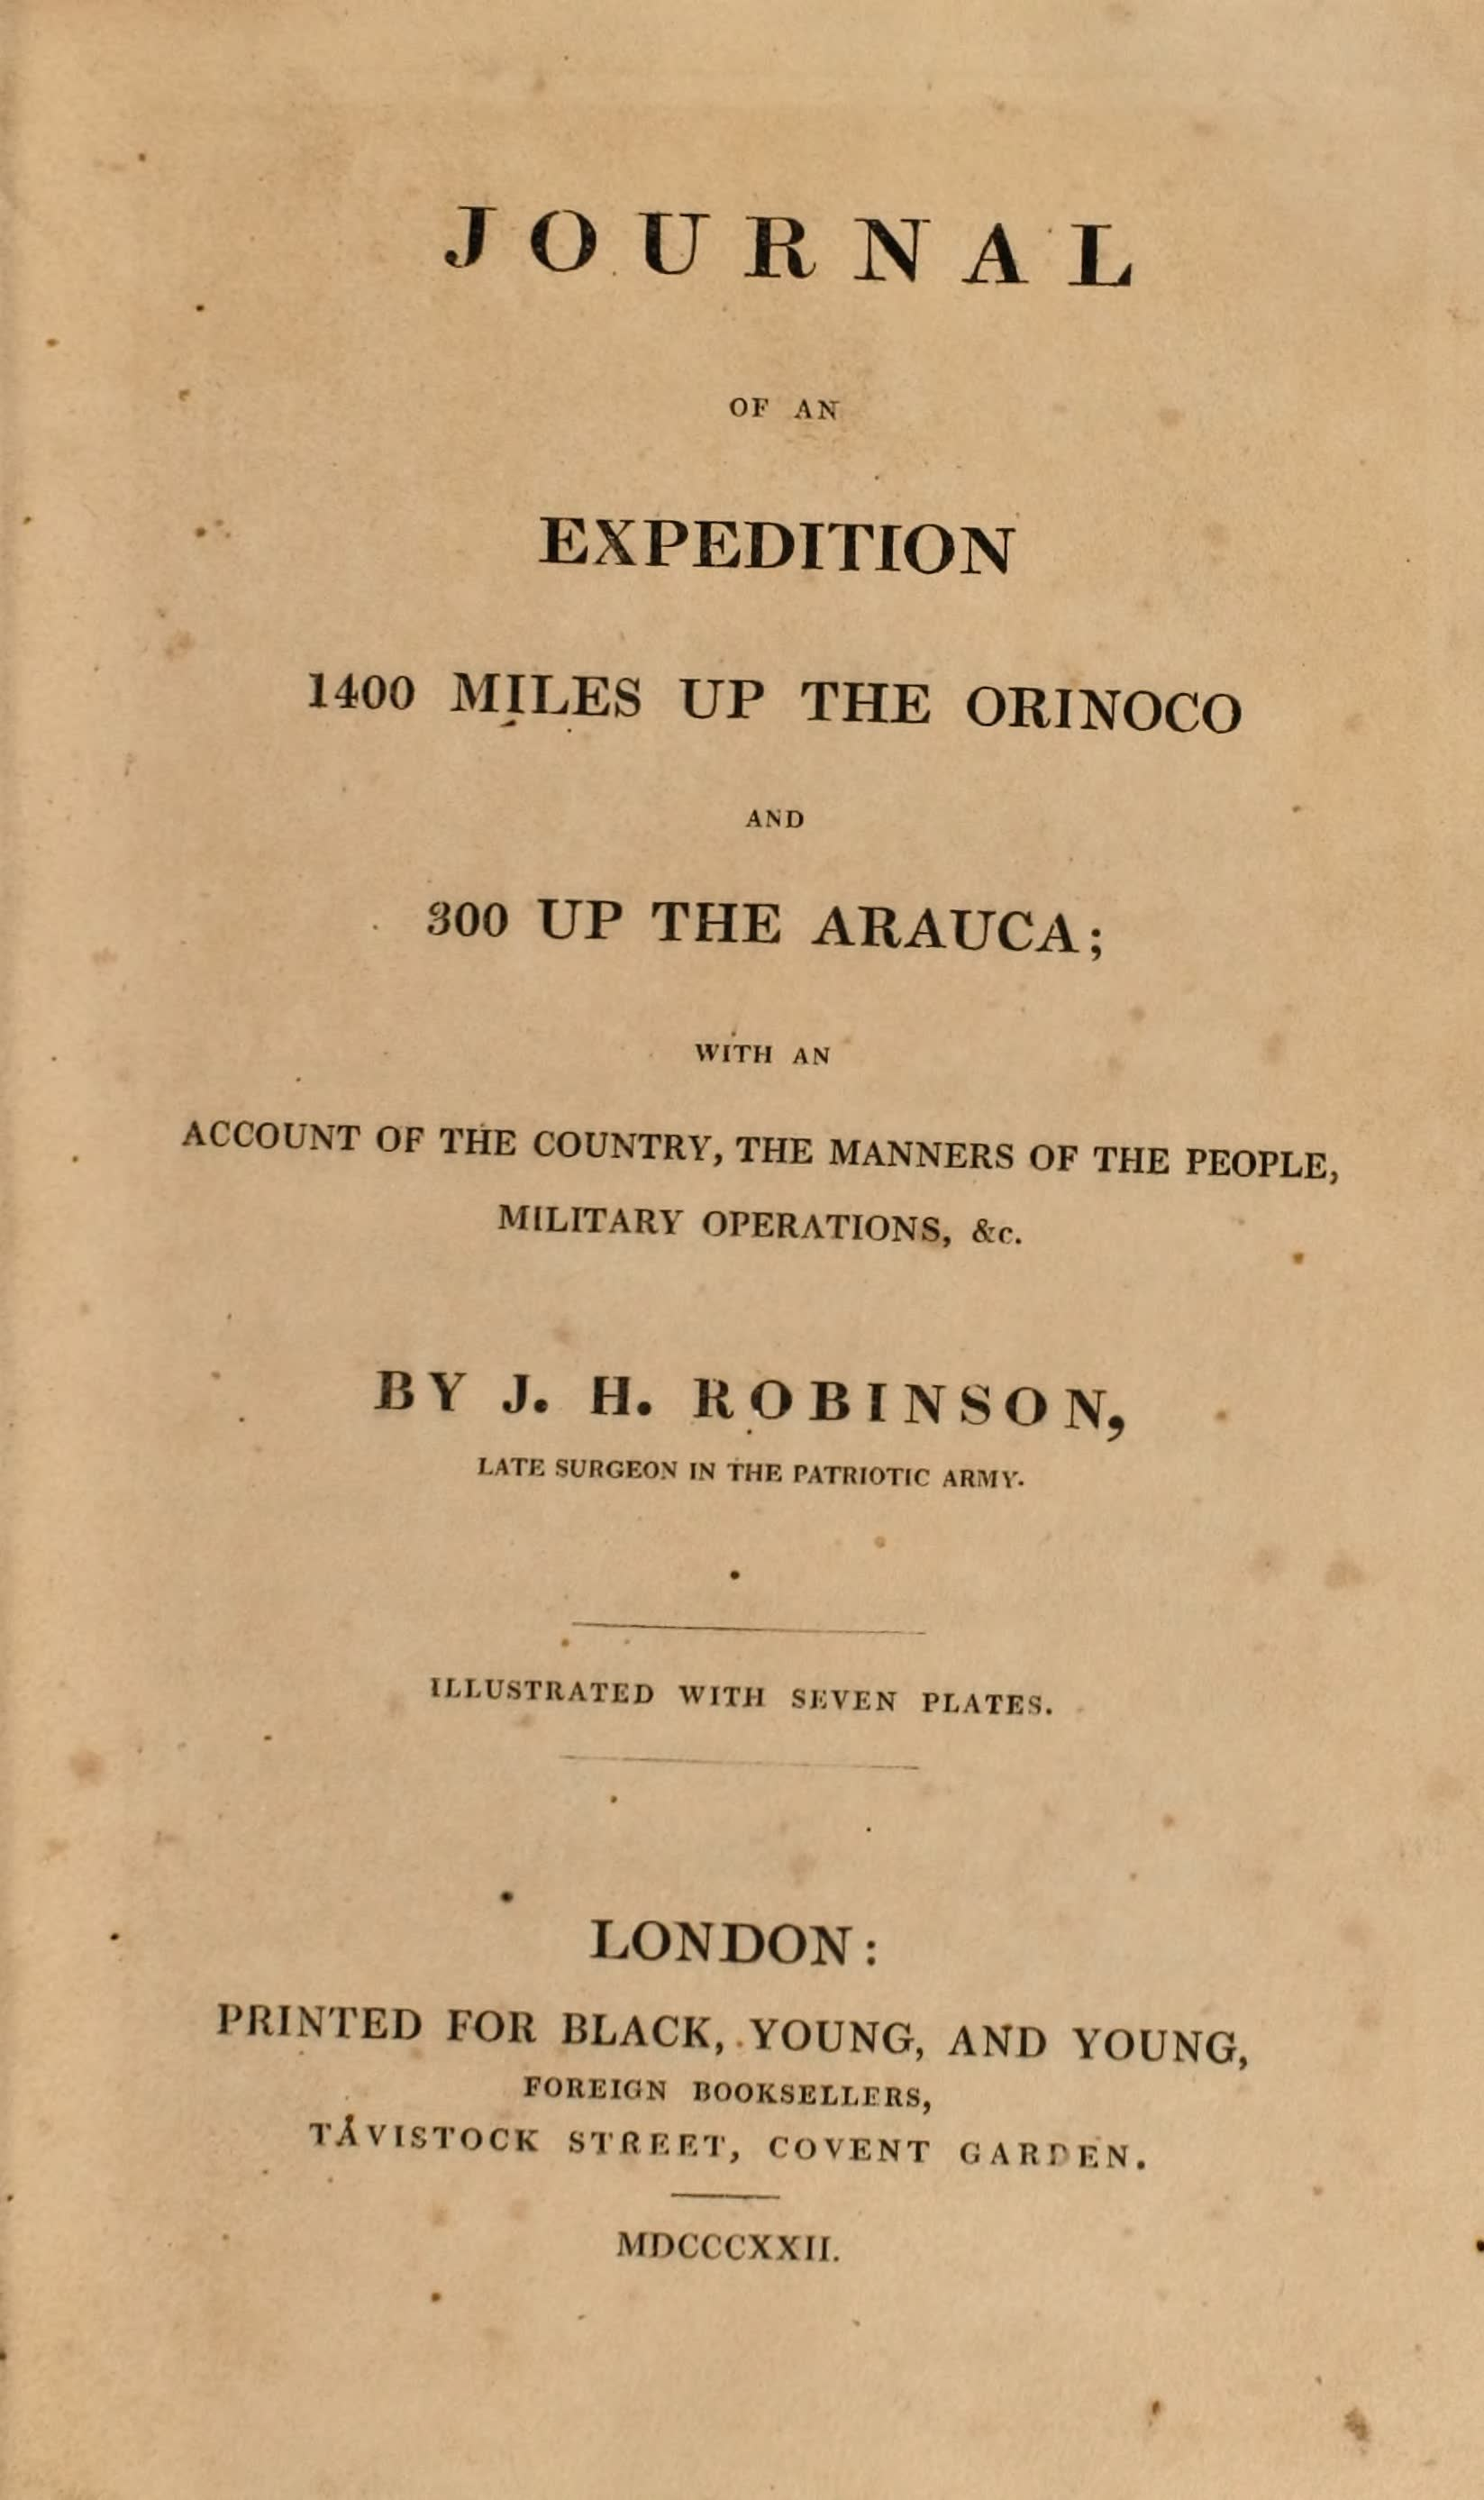 Journal of an Expedition 1400 miles up the Orinoco - Title Page (1822)